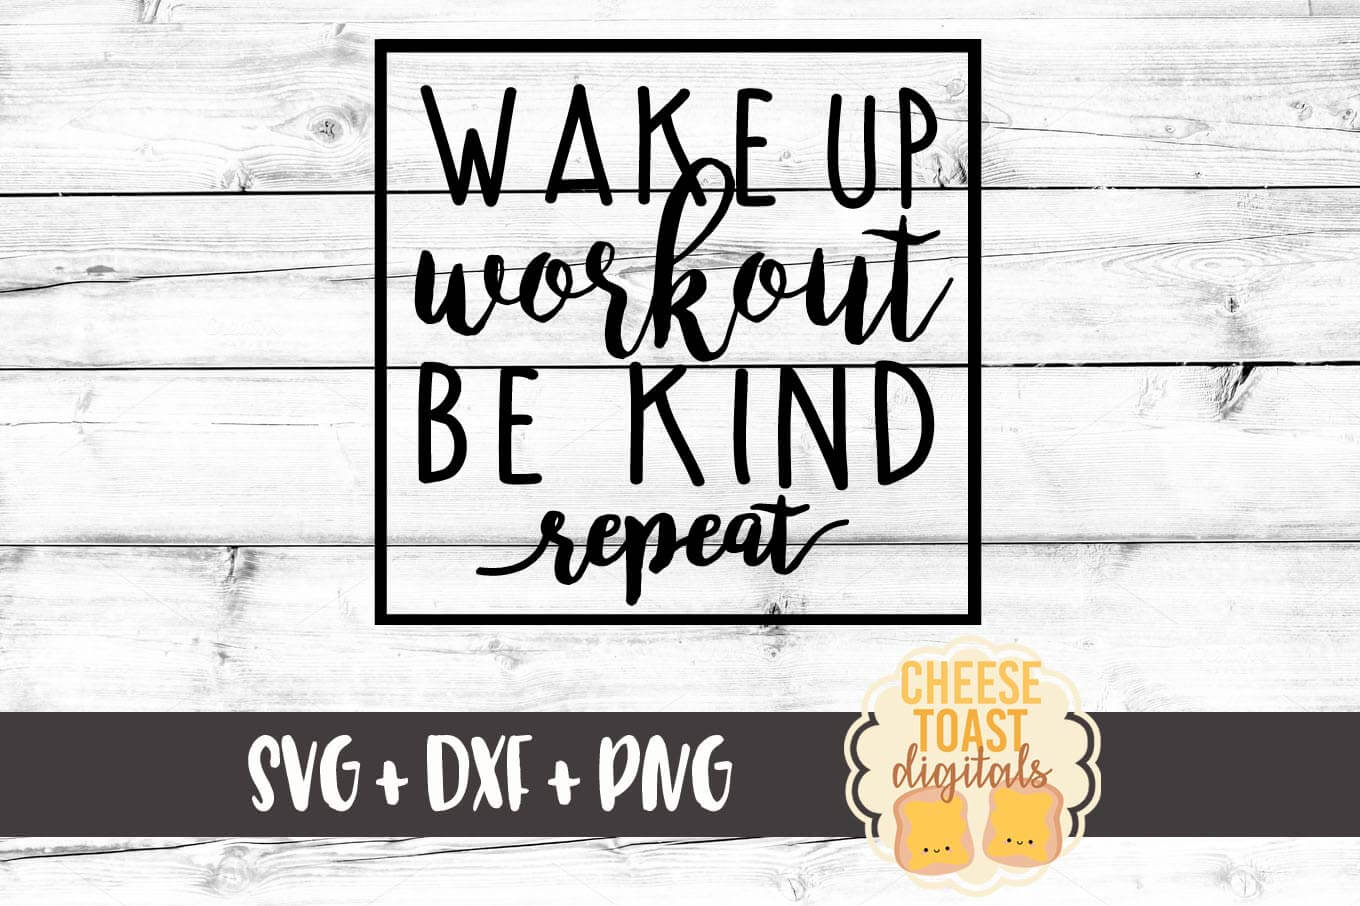 Wake Up Workout Be Kind Repeat - SVG, PNG, DXF